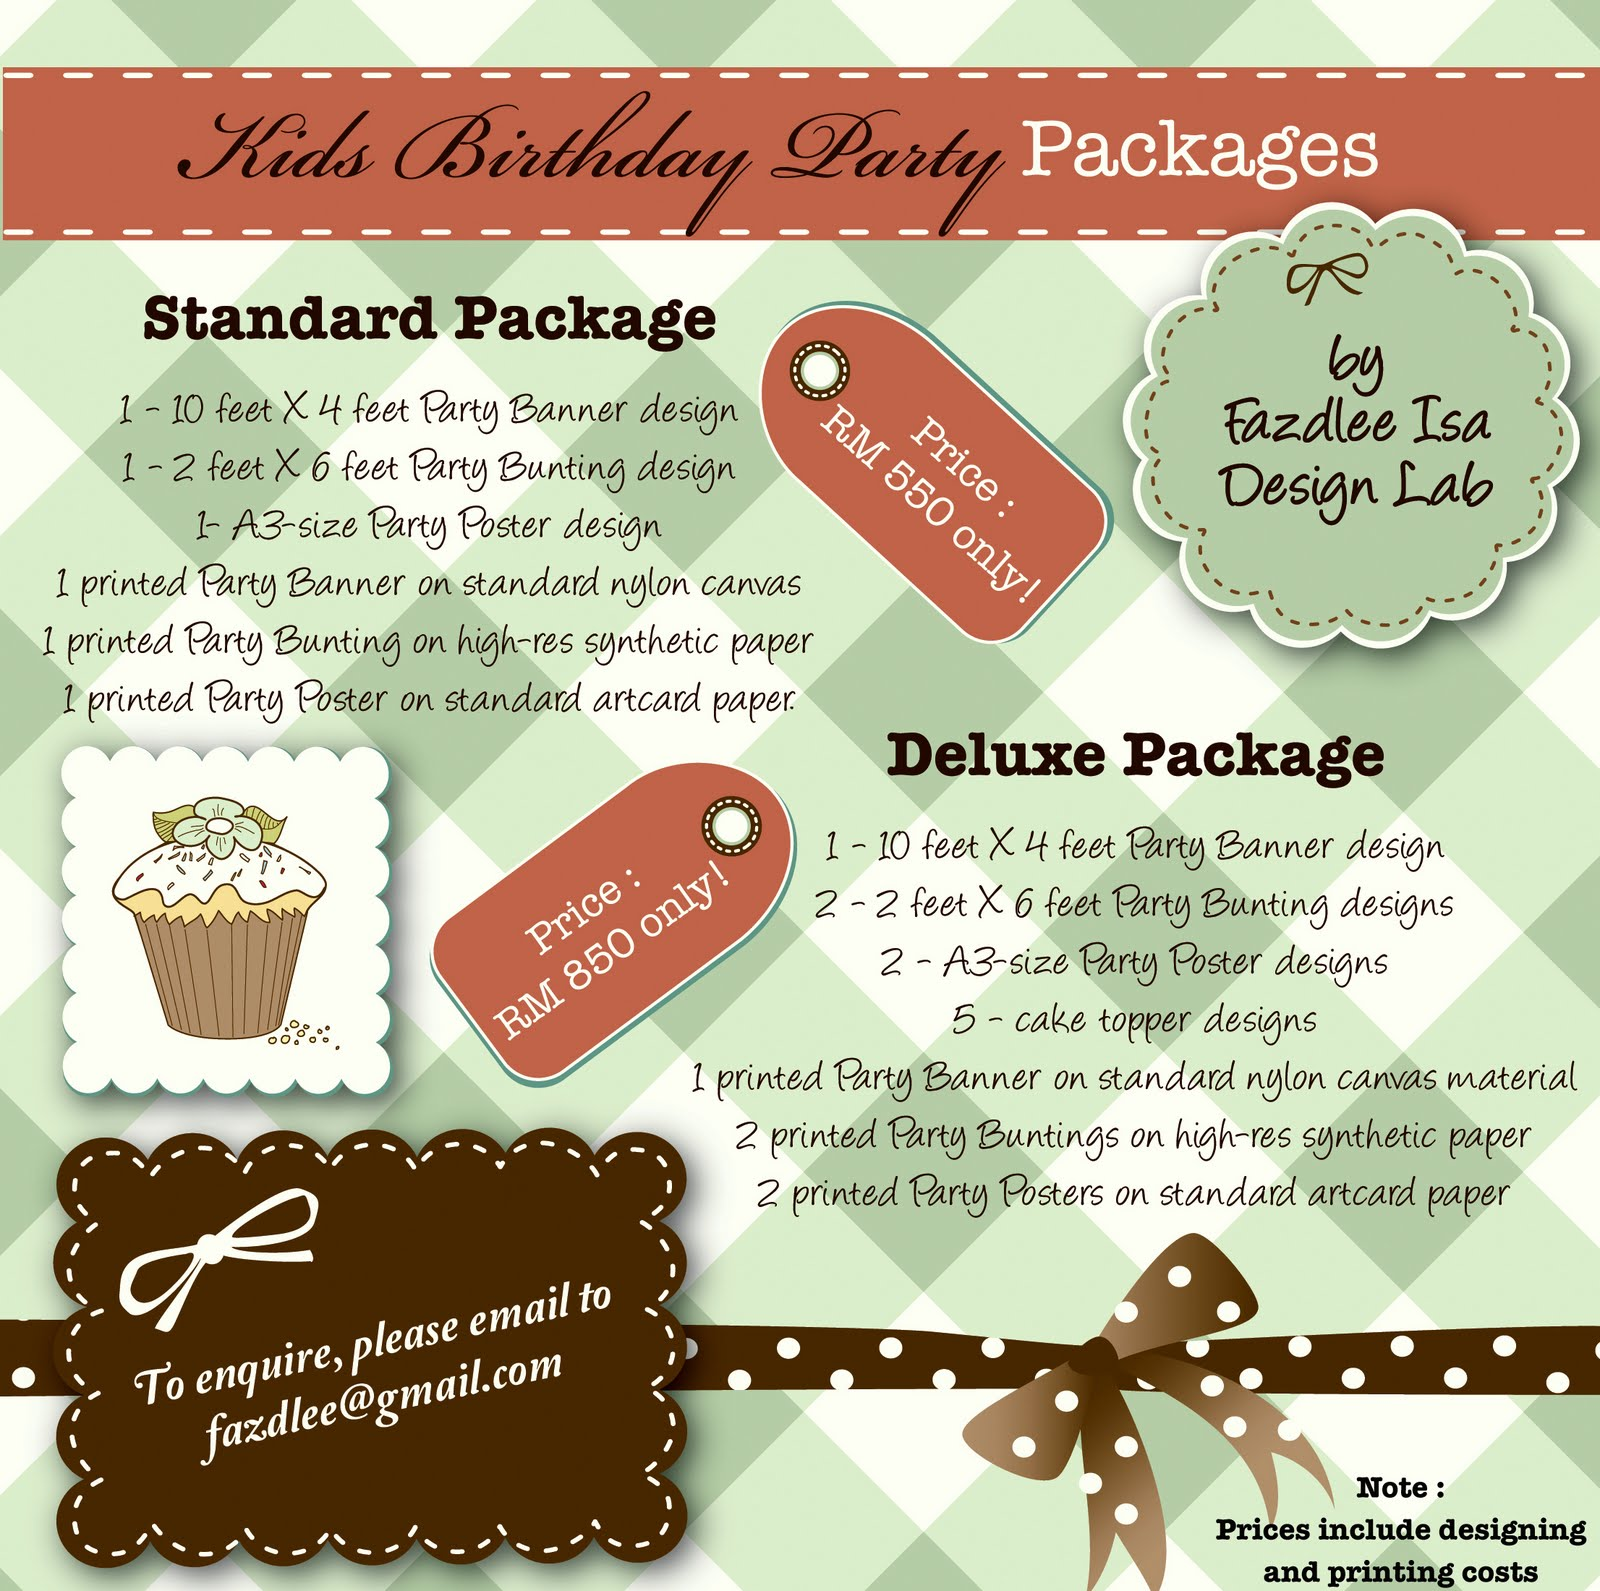 Fazdlee Isa Design Lab: Kids Birthday Party Packages